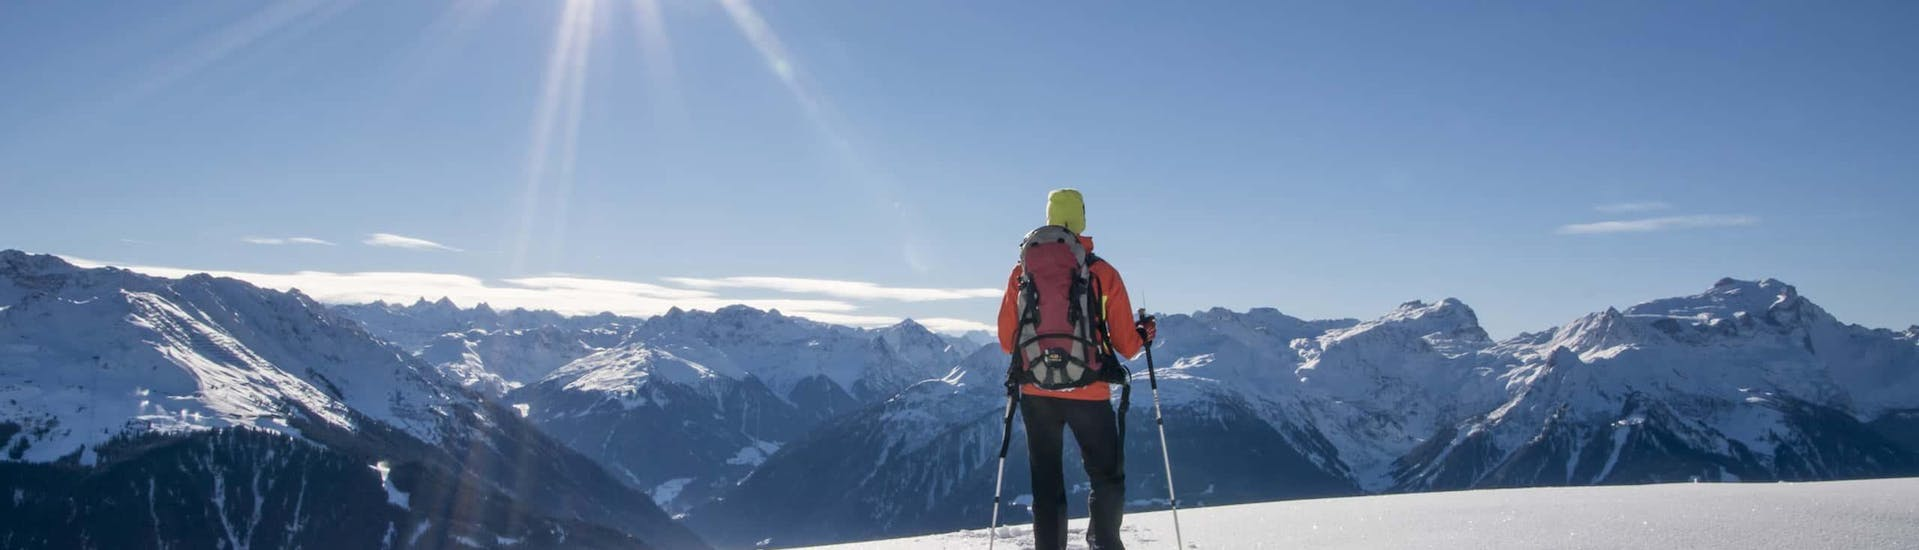 A hiker is overlooking the mountainous panorama while on one of the Snowshoe-hiking private tours organised by Leo Ulber.